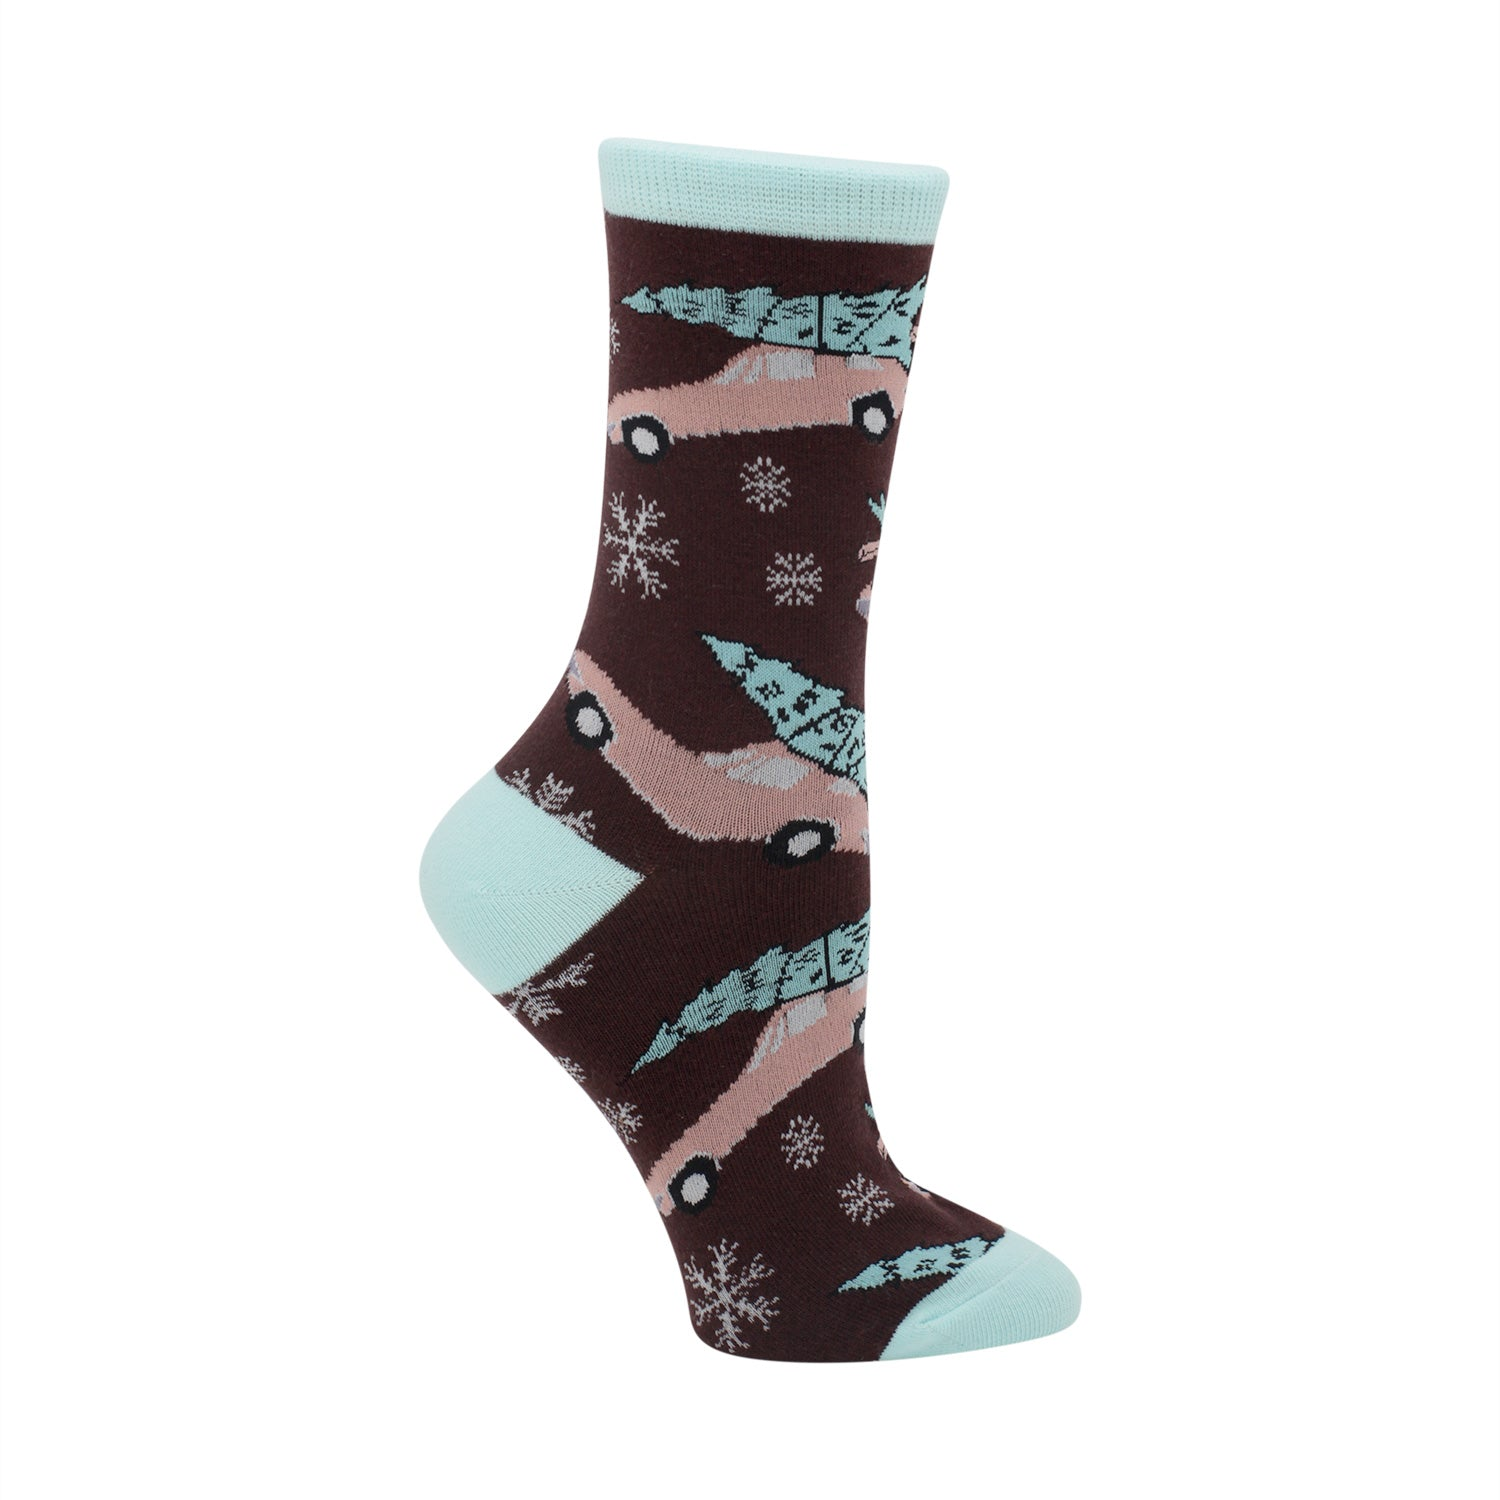 Cruisin' Into the Holiday Women's Socks